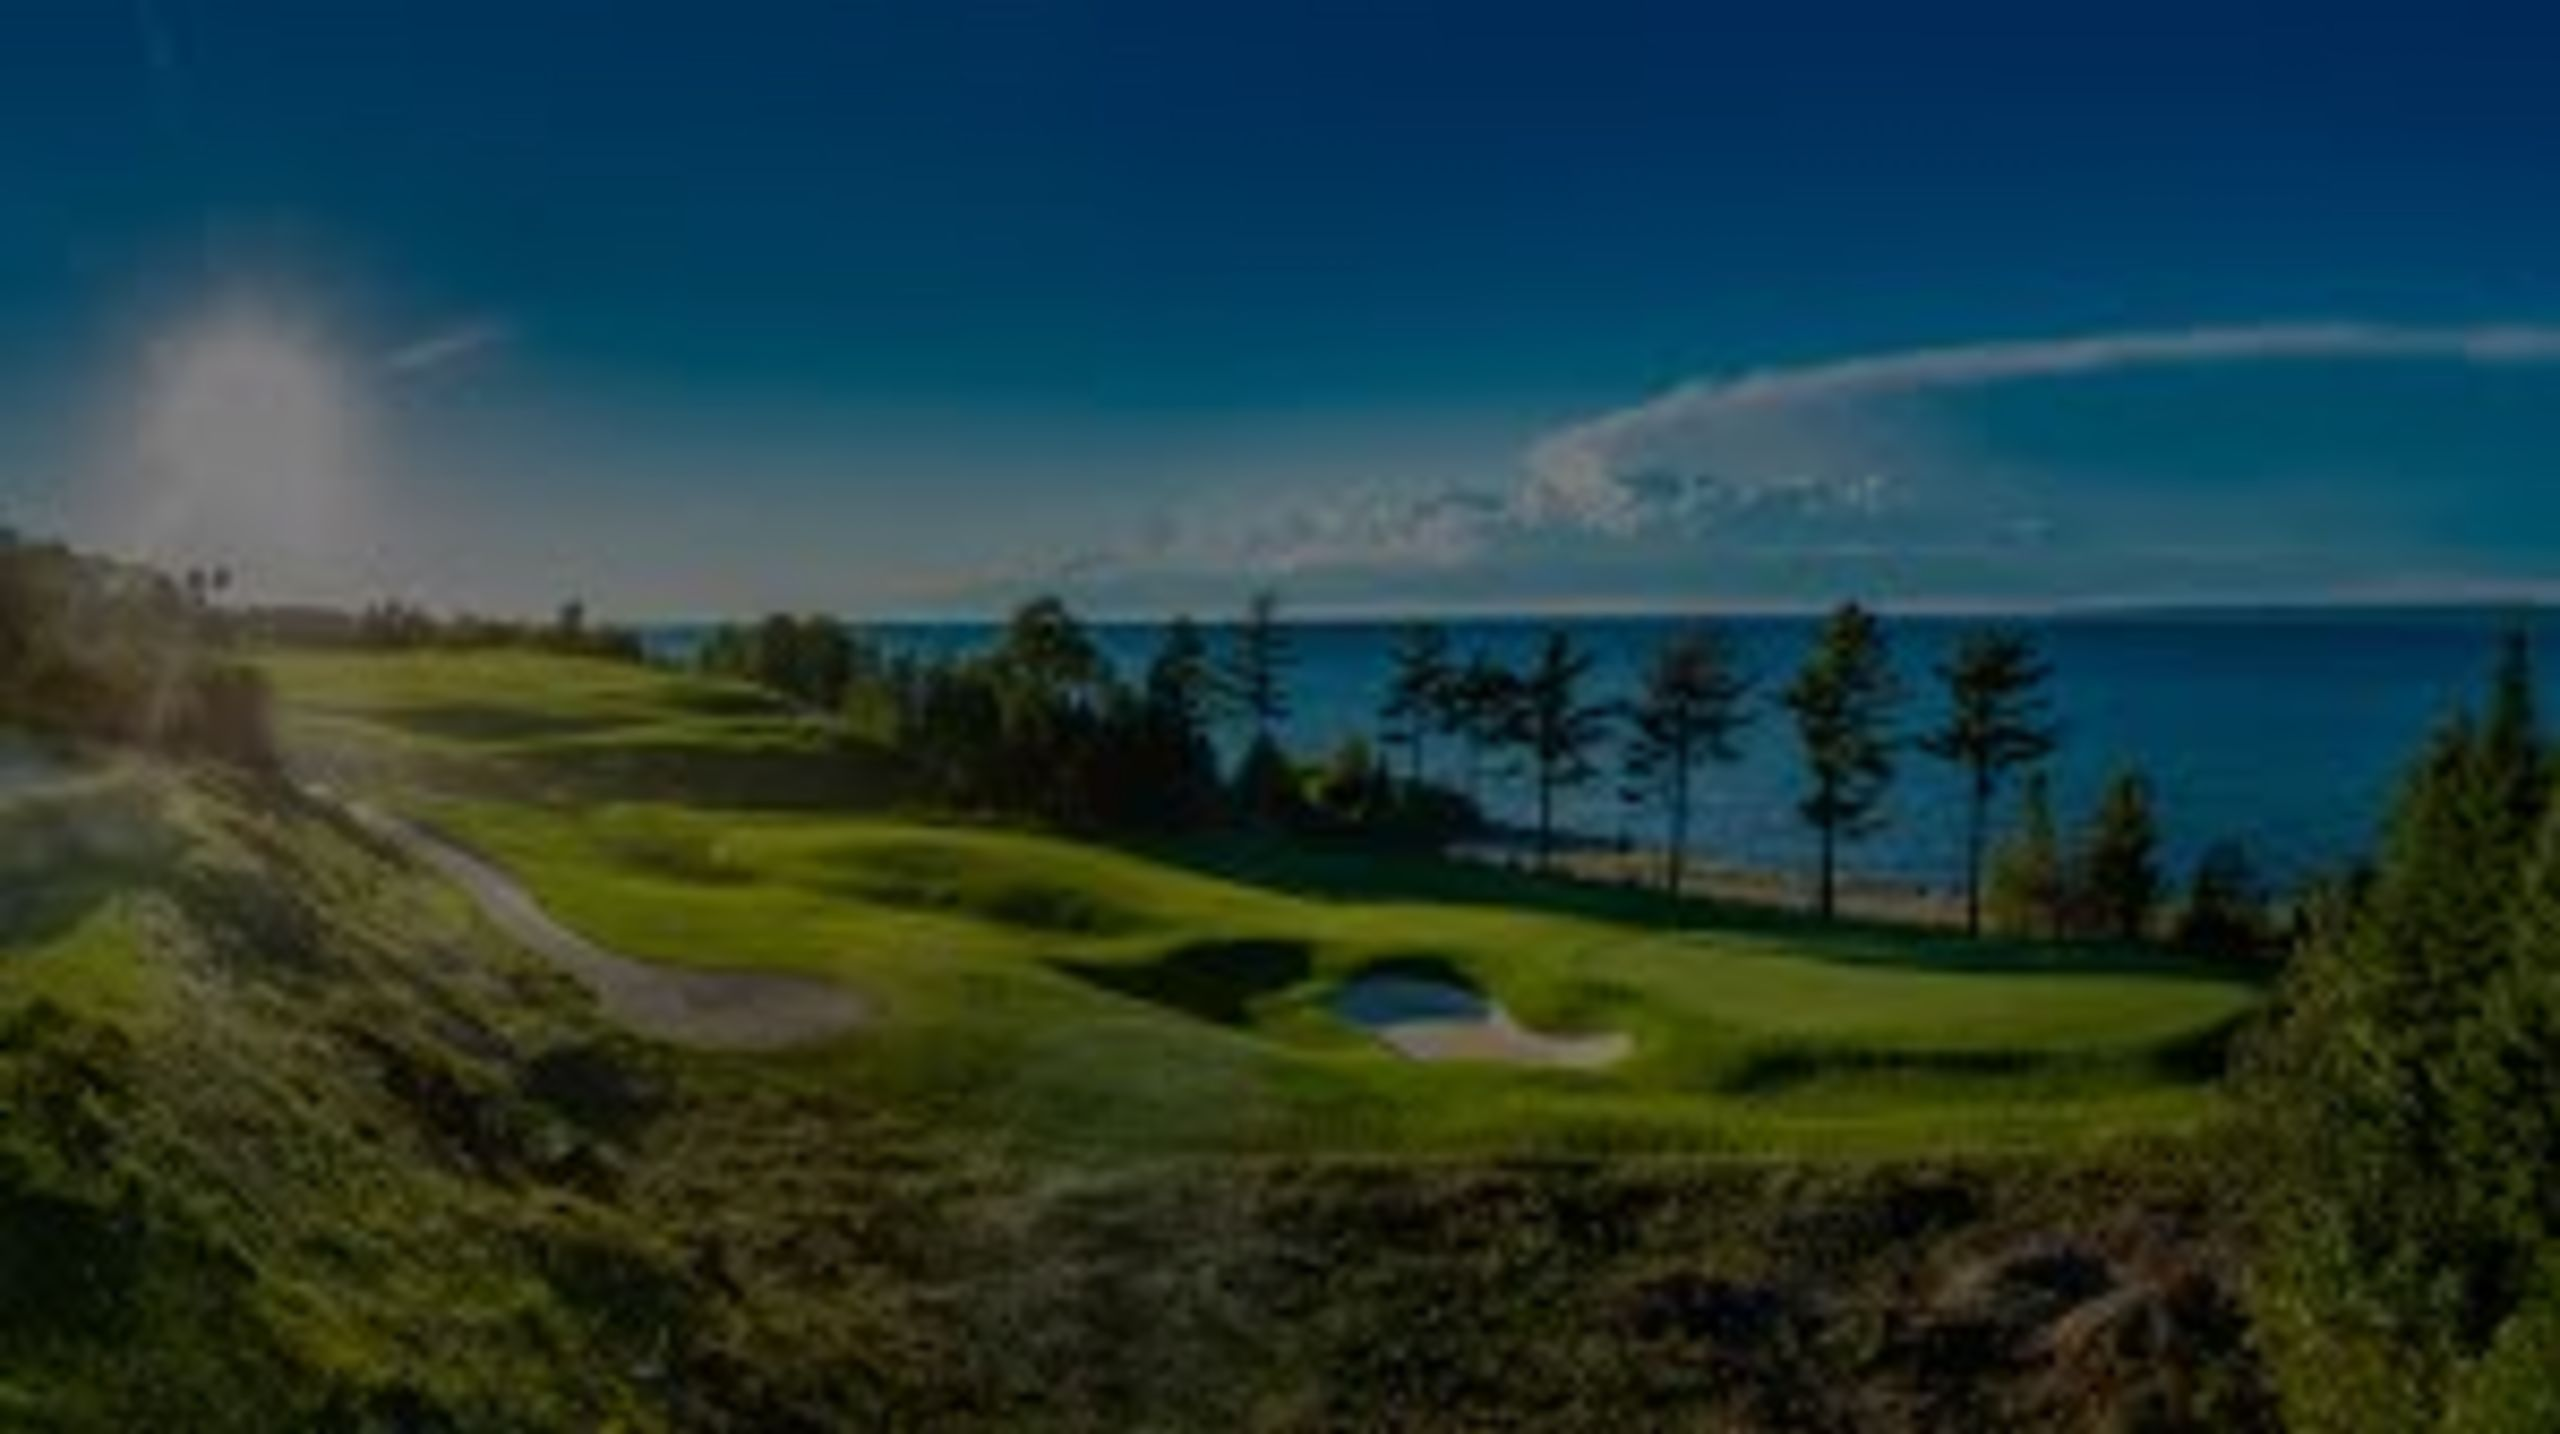 Northern Michigan is home to some of the nation's most exquisite golf courses, Including Bay Harbor